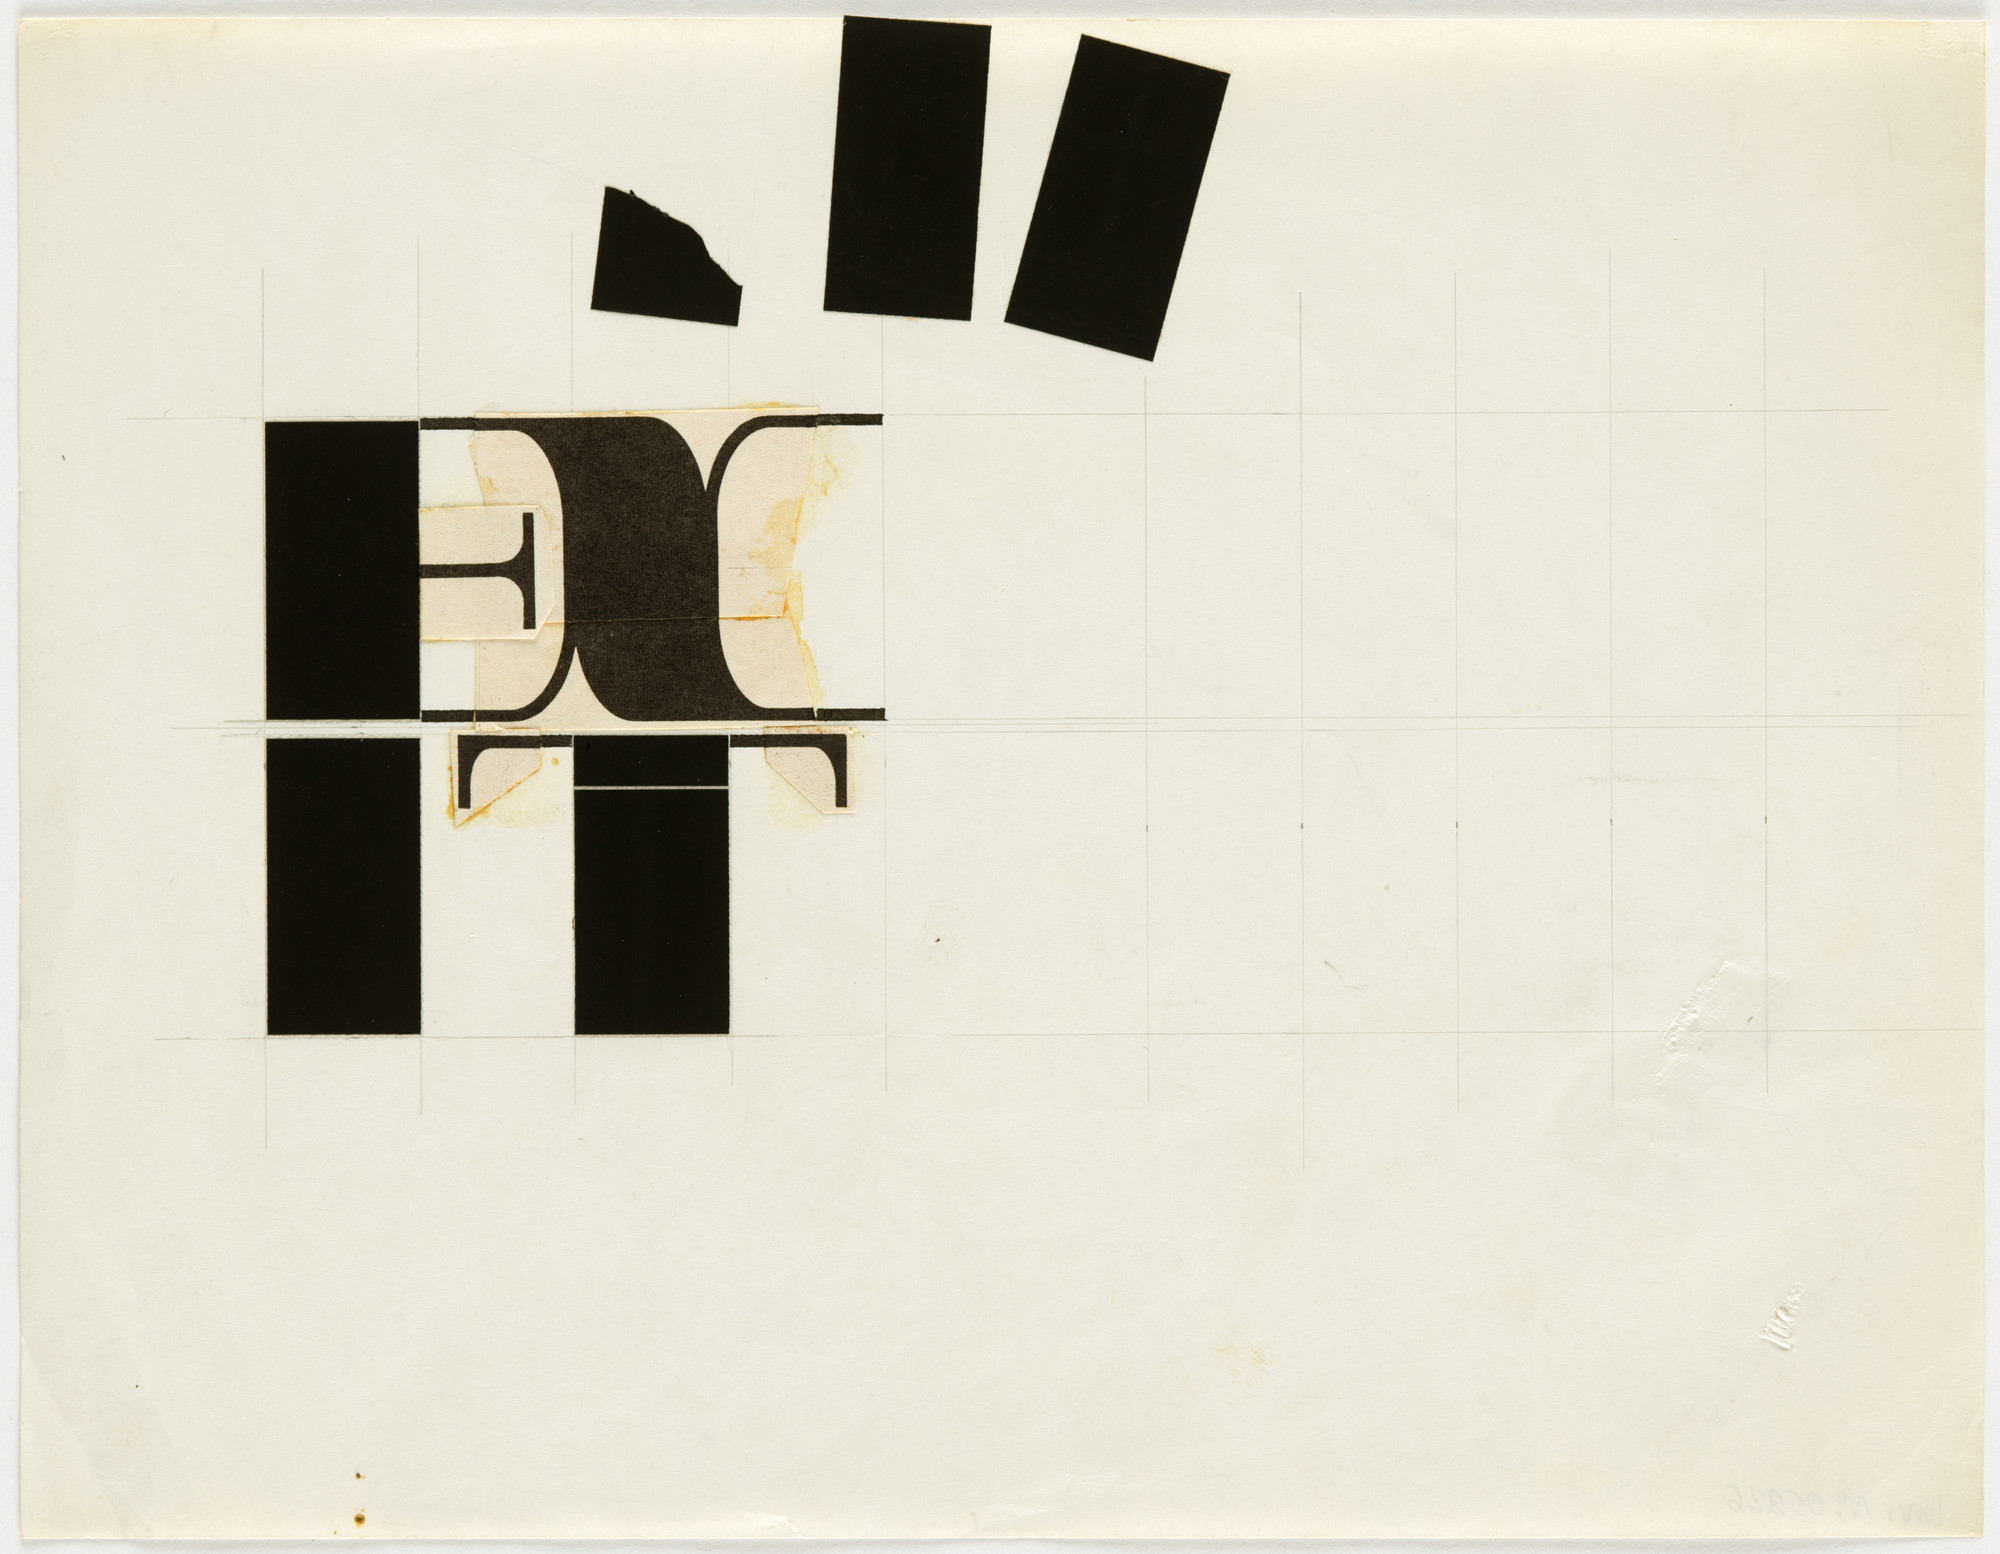 George Maciunas, George Brecht. Mechanical for Exit. c. 1966